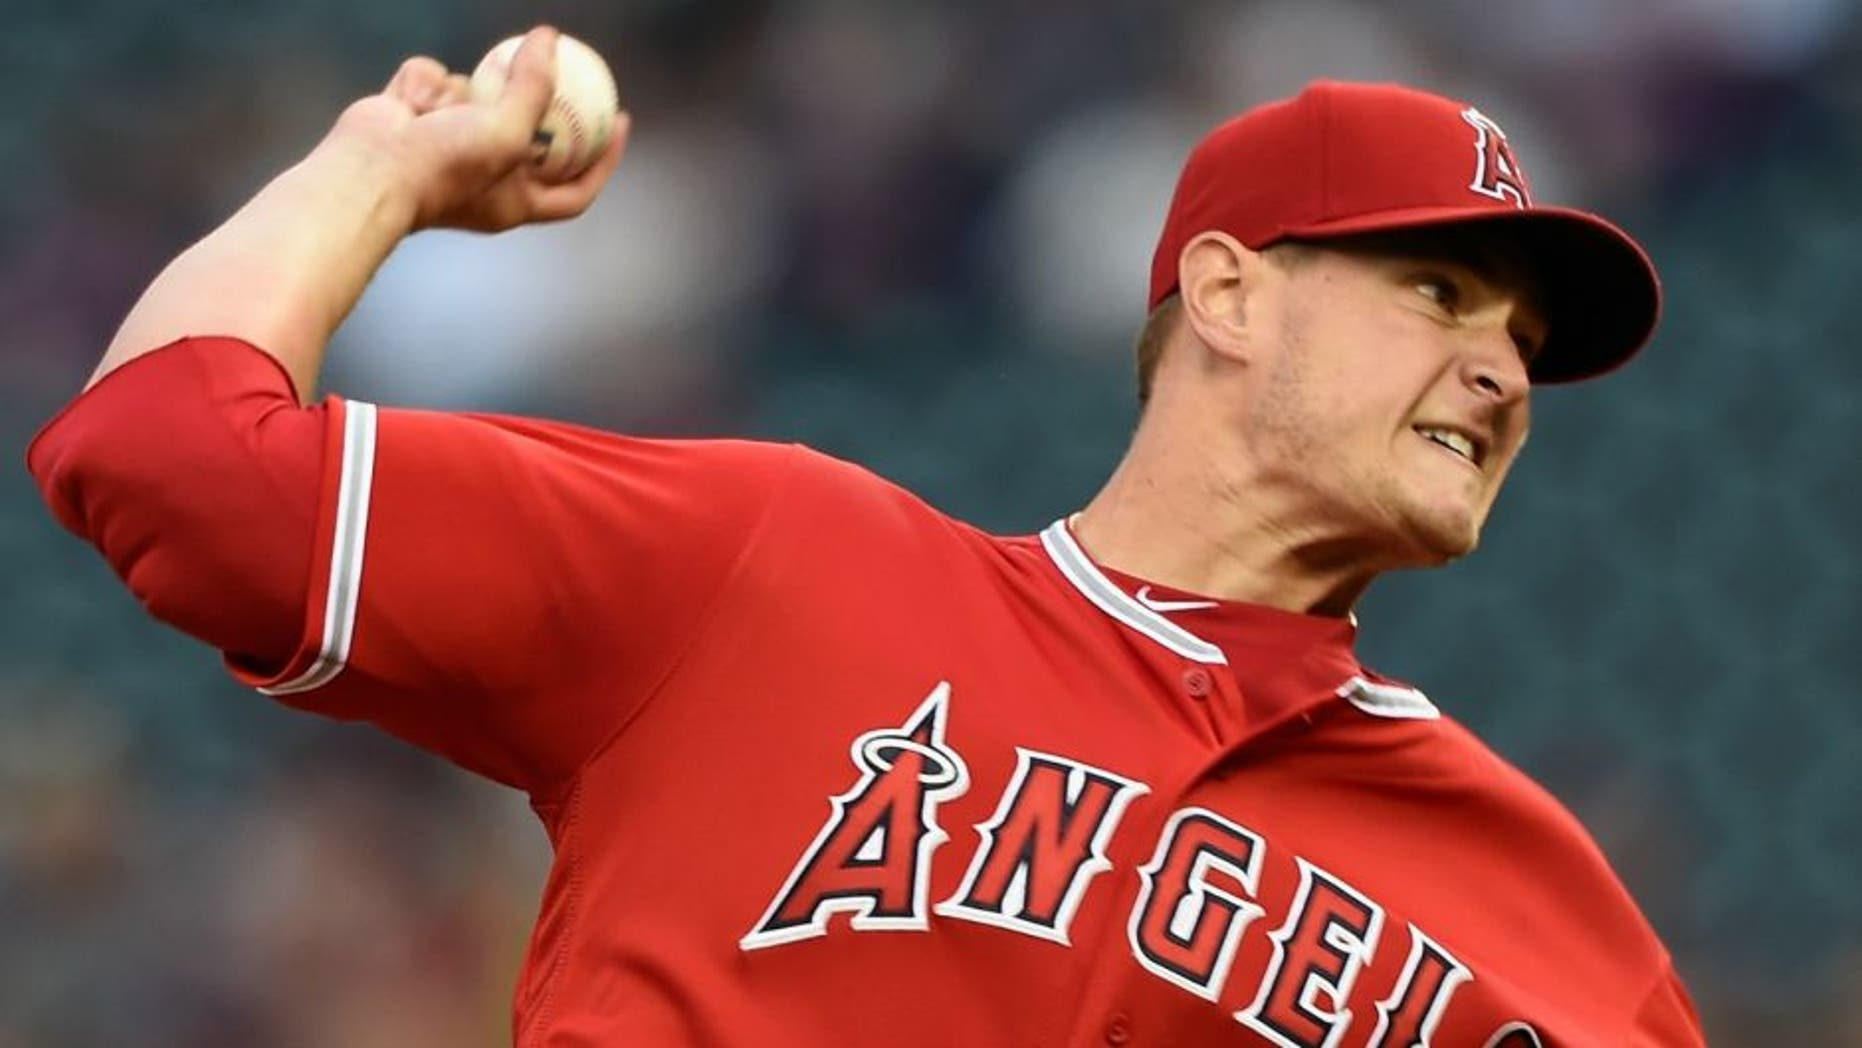 MINNEAPOLIS, MN - APRIL 15: Garrett Richards of the Los Angeles Angels of Anaheim delivers a pitch against the Minnesota Twins during the first inning of the game on April 15, 2016 at Target Field in Minneapolis, Minnesota. All players are wearing number 42 in honor of Jackie Robinson Day. (Photo by Hannah Foslien/Getty Images)